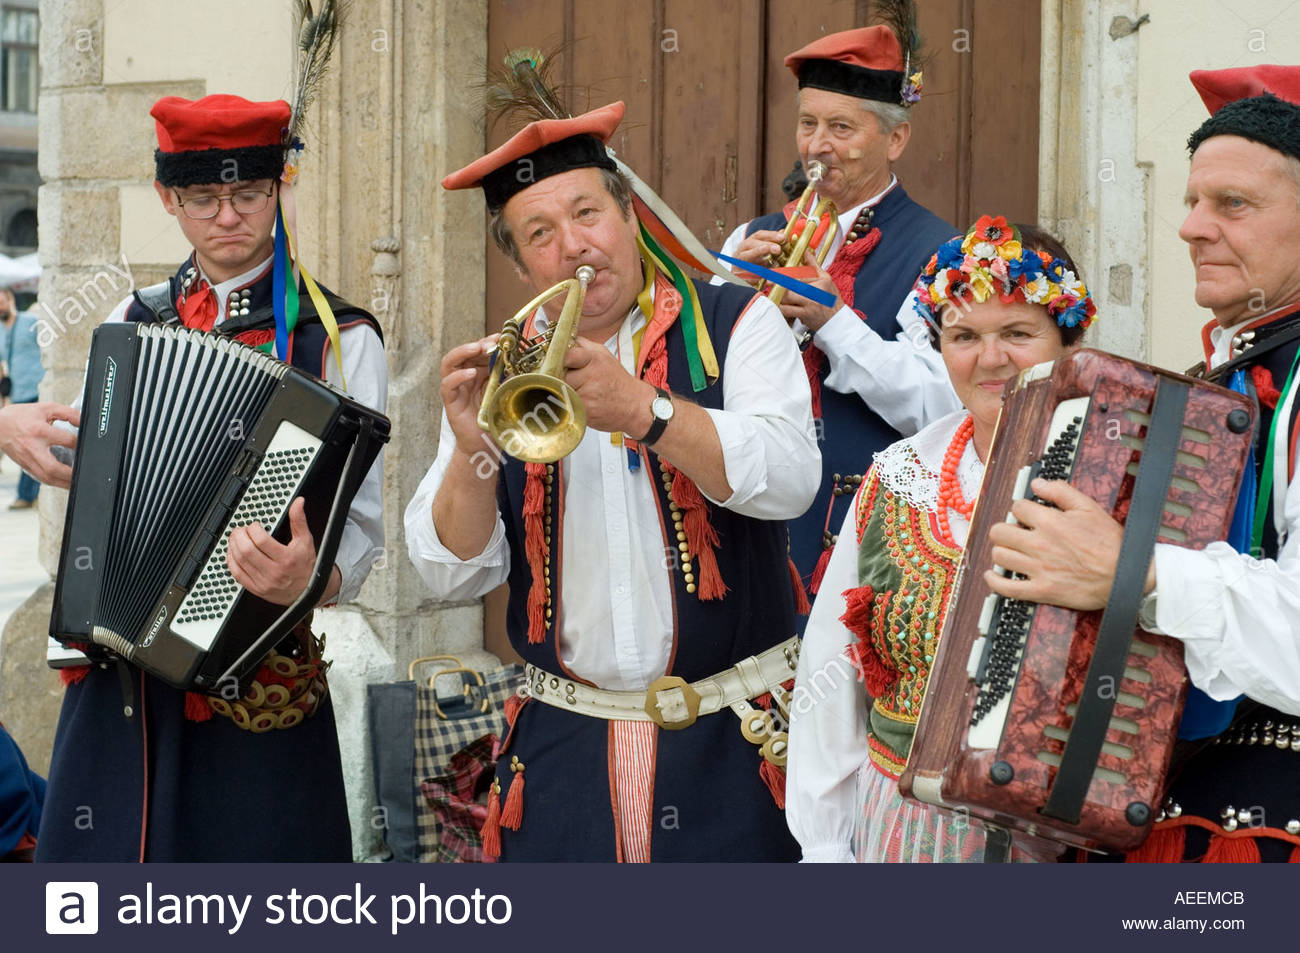 Musicians in traditional dress play Polish folk music for tourists in Krakow - Stock Image